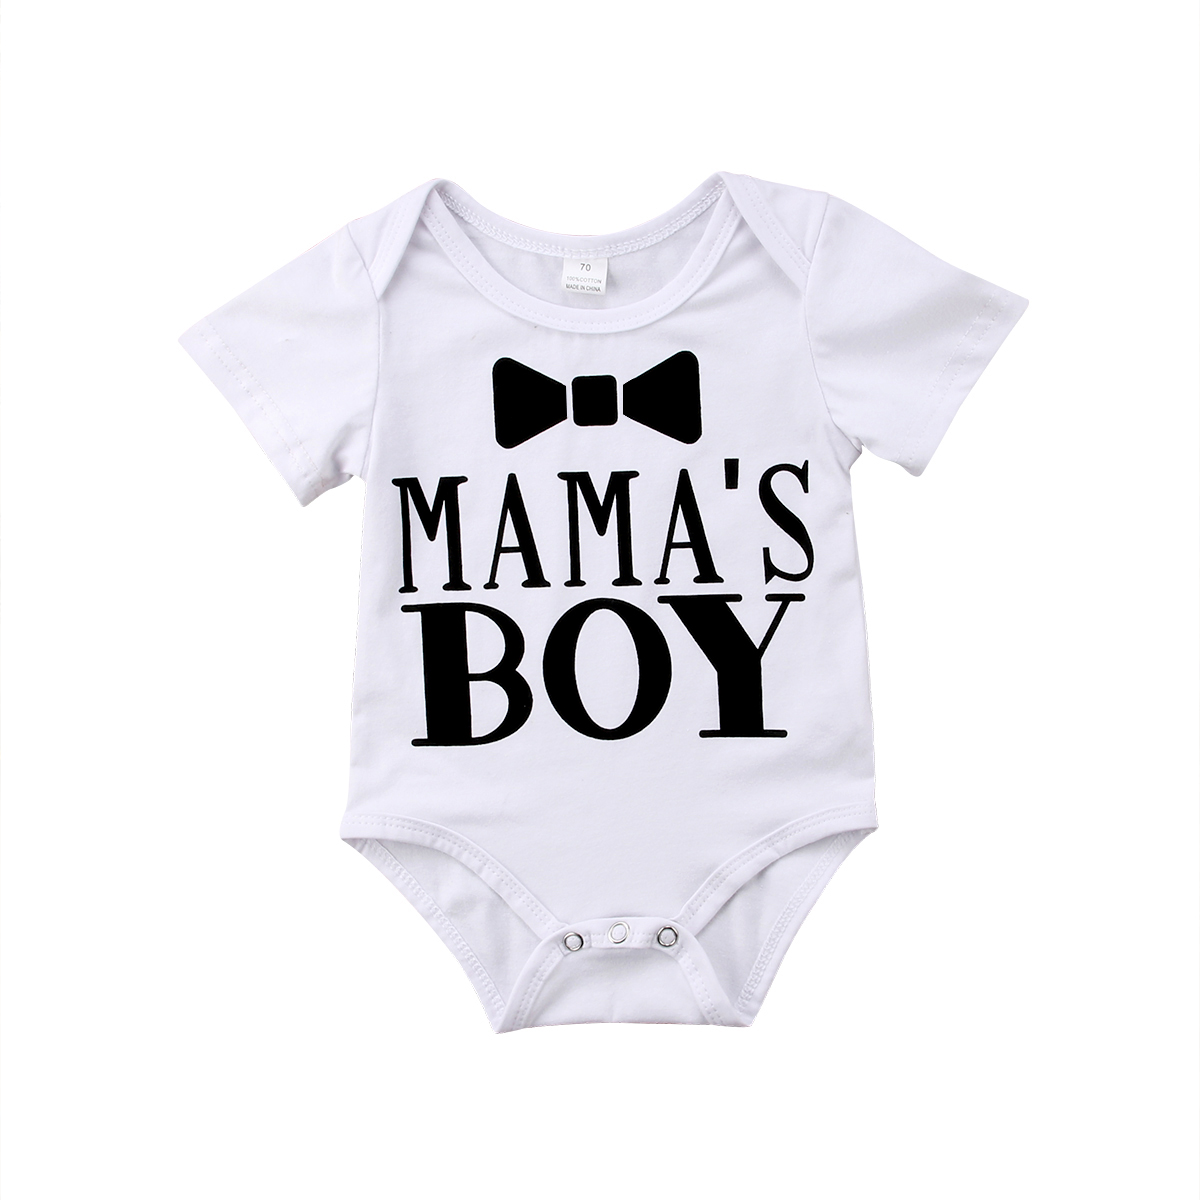 Newborn Toddler Baby Boy Clothes   Romper   Letter Print Gentleman Top Jumpsuit Outfits